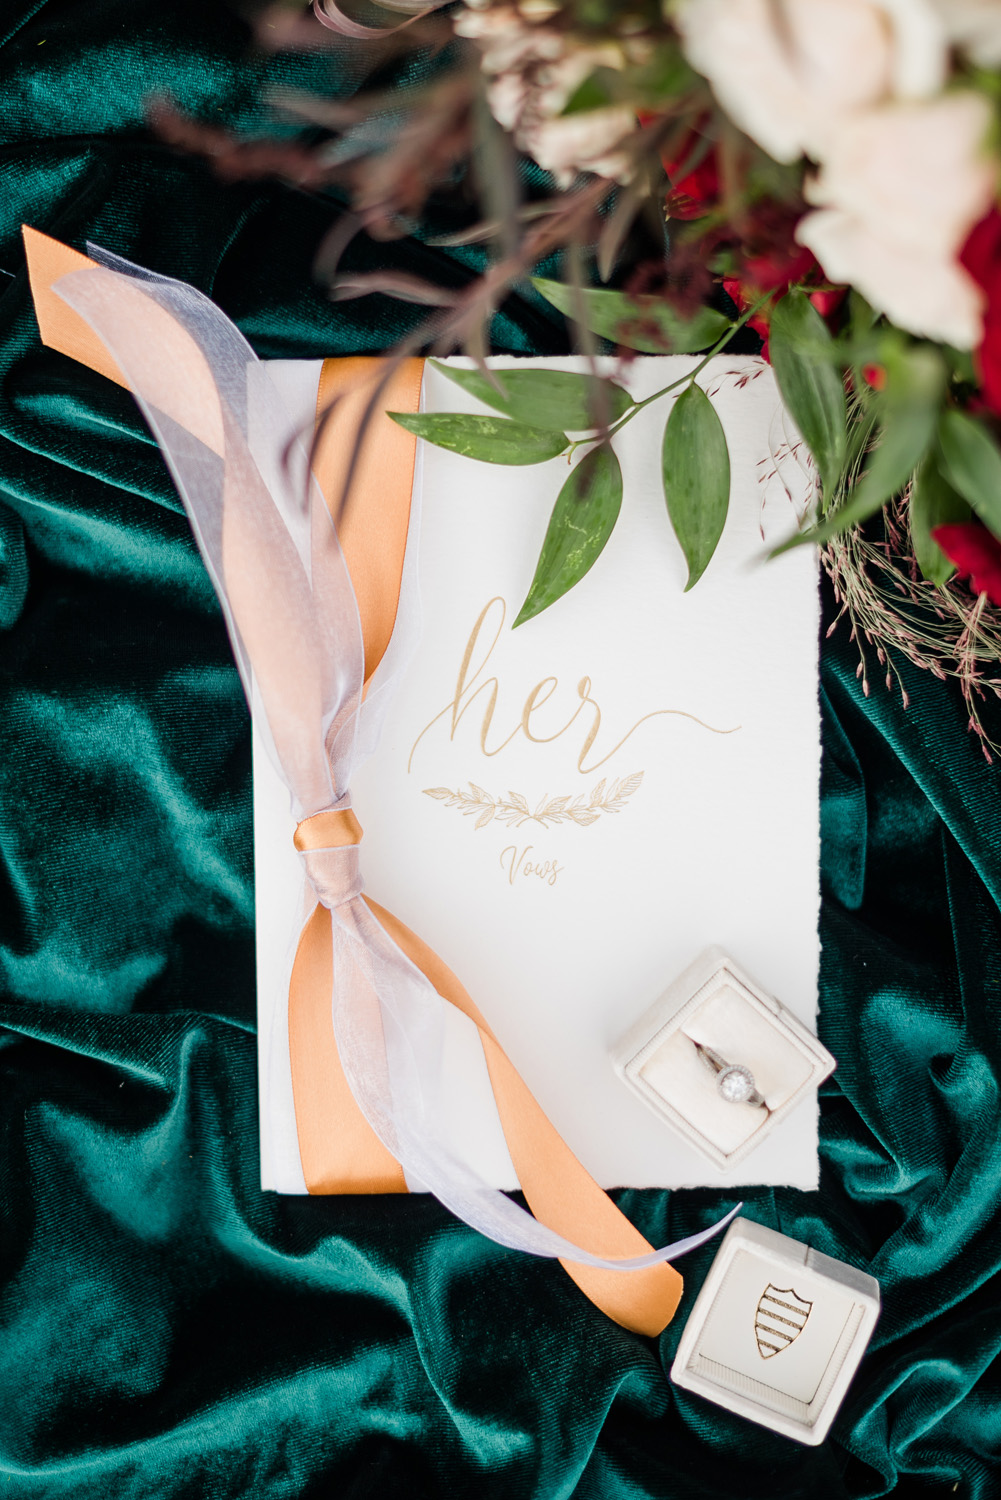 Festive Sunny Winter Wedding Inspiration | JW Marriott Las Vegas Wedding | Kristen Marie Weddings + Portraits